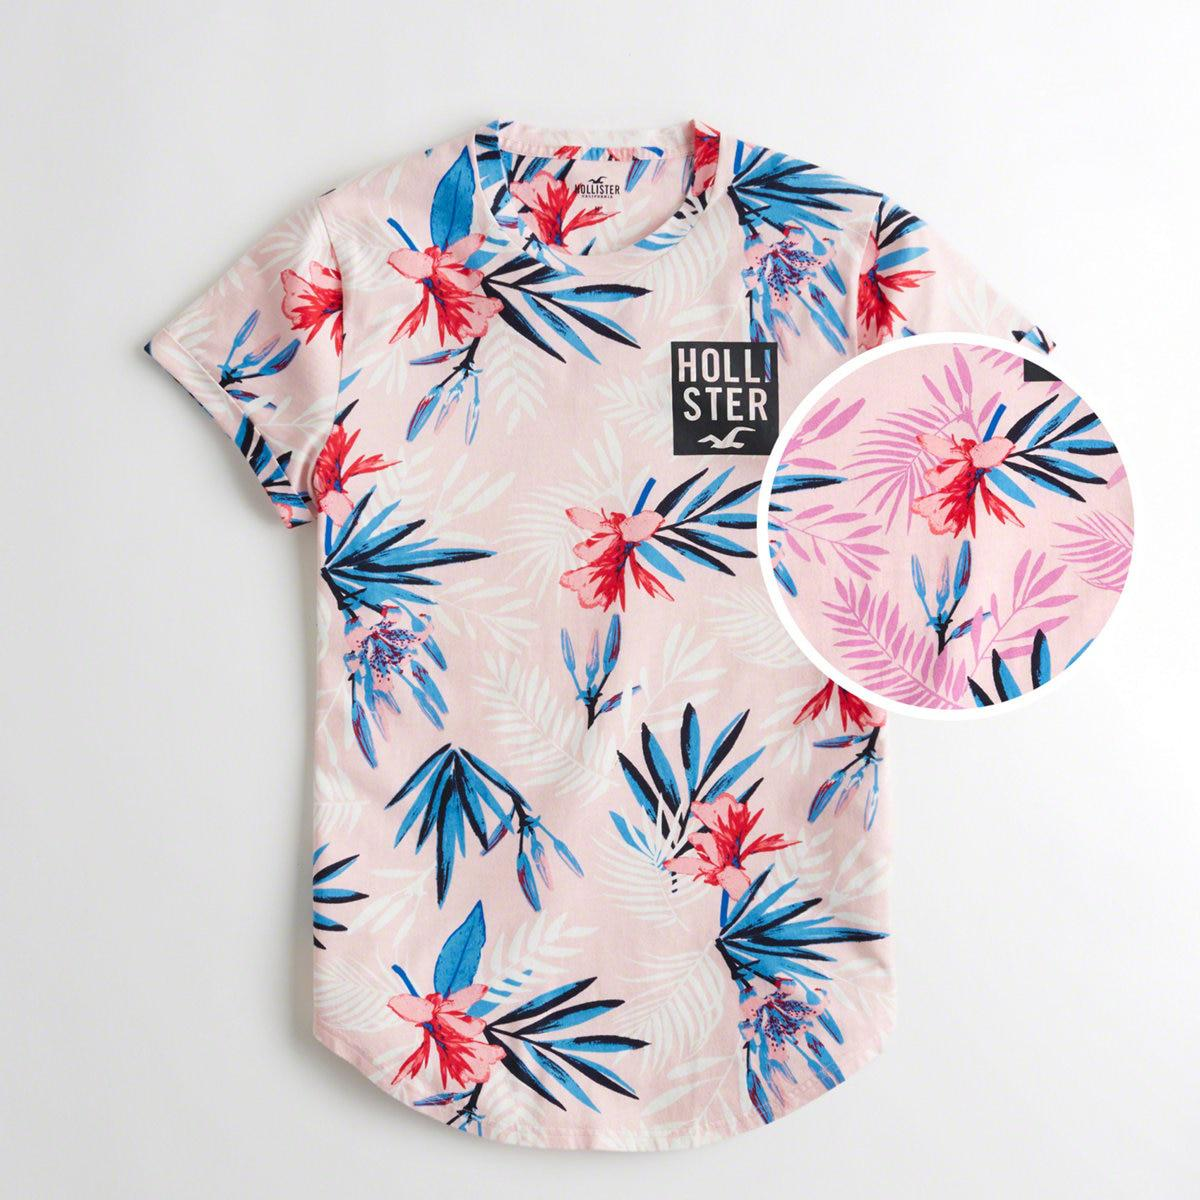 26e0d093 Lyst - Hollister Guys Tropical Print Logo Graphic Tee From Hollister ...